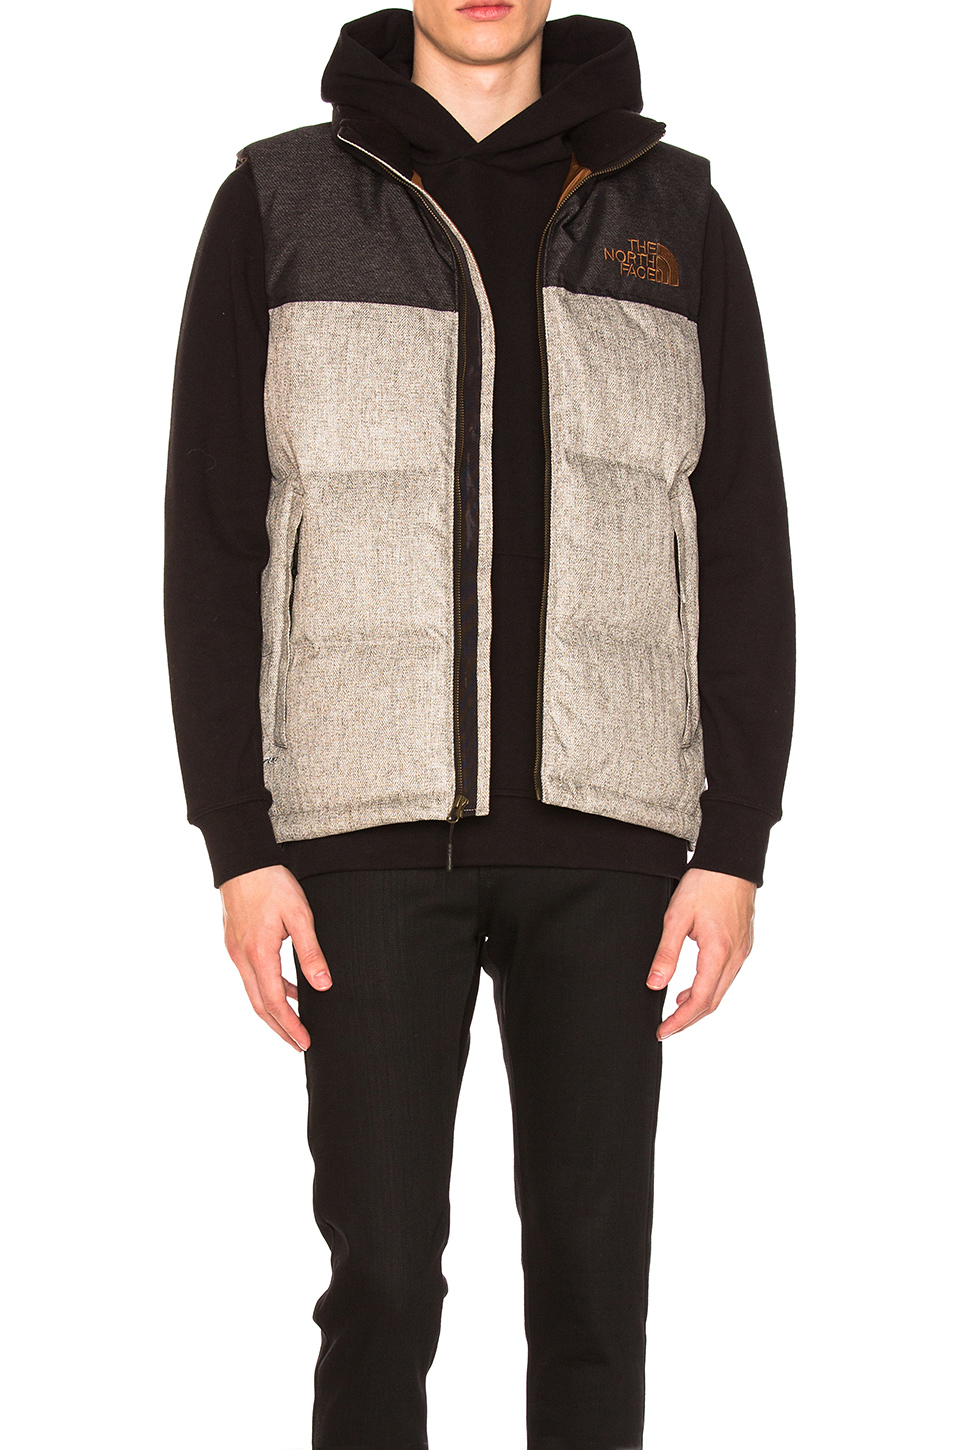 The North Face Novelty Nuptse Vest in Monument Grey Herringbone and TNF Black Dobby